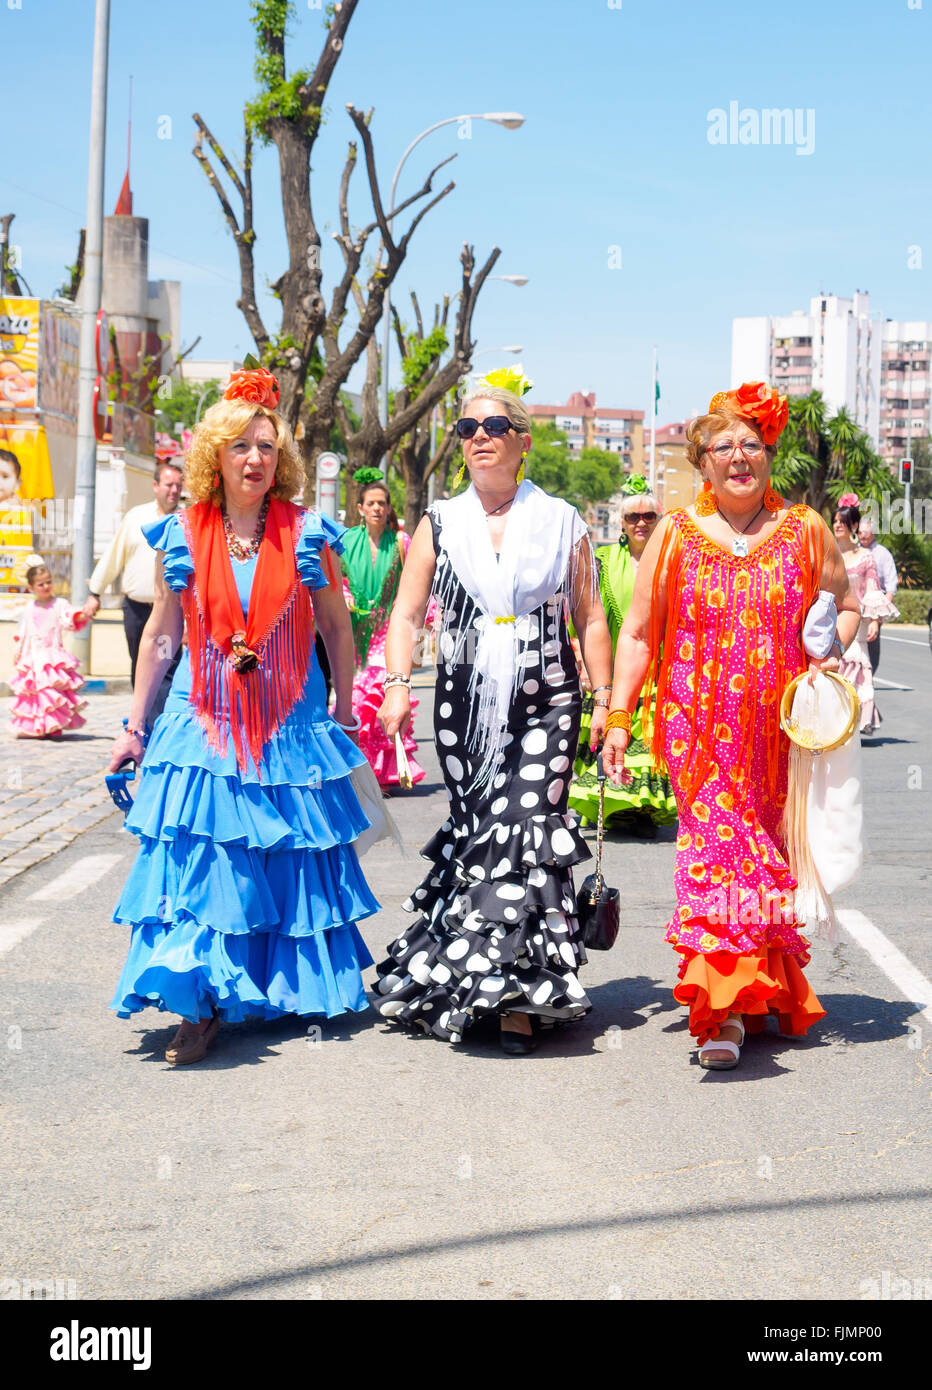 Seville, Spain - April 23, 2015: Women dressed in traditional costumes at the Seville's April Fair. - Stock Image